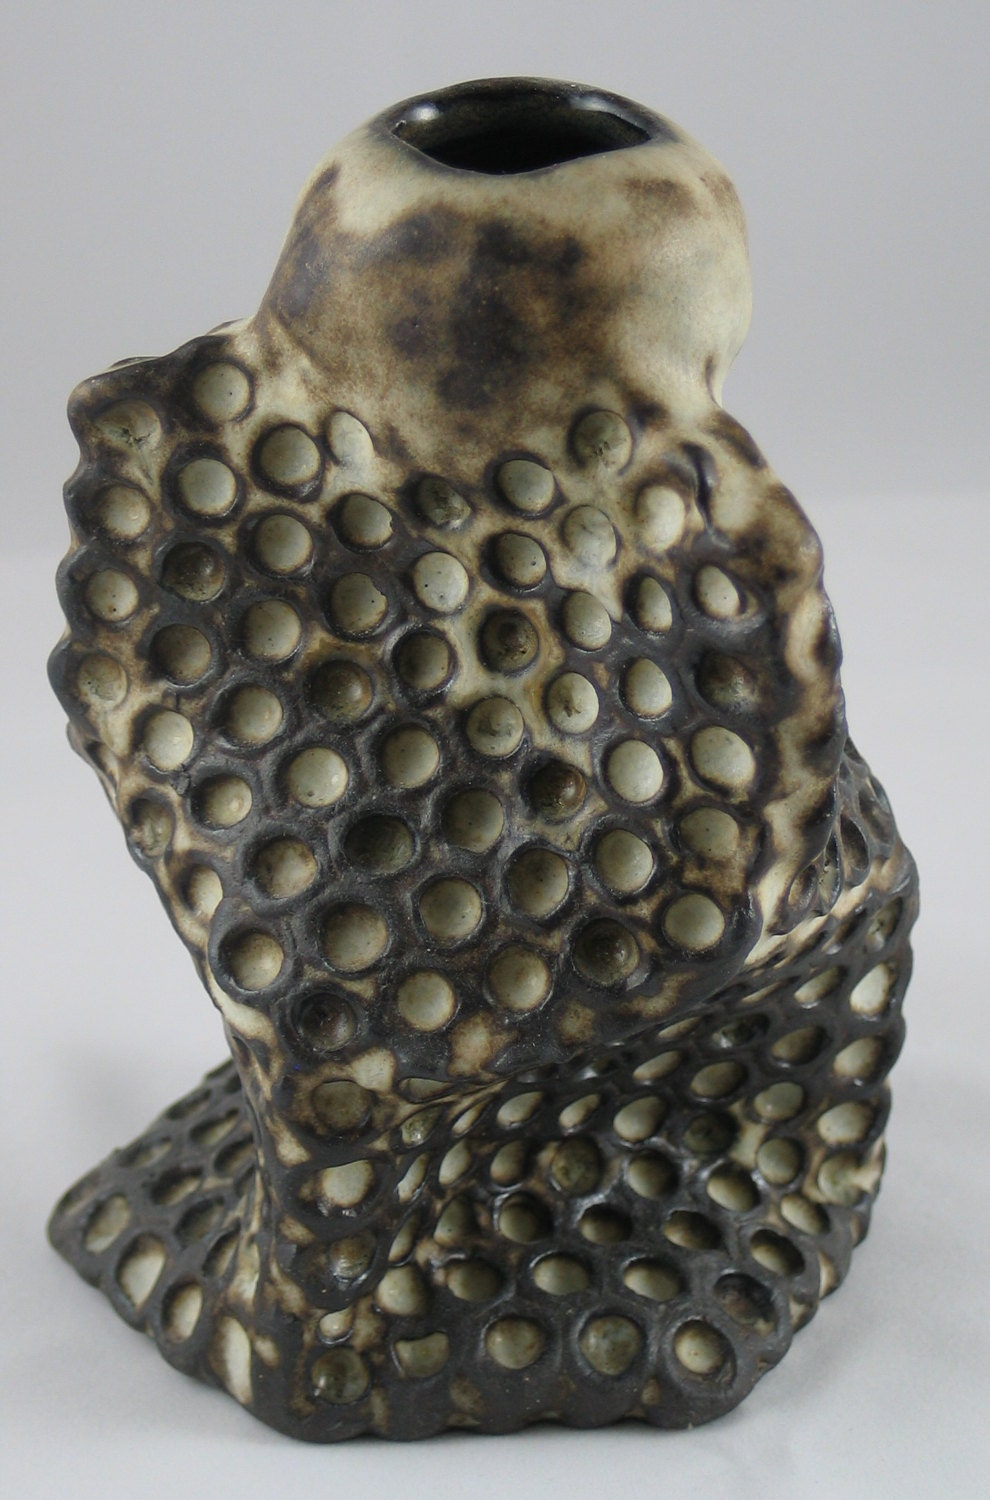 Honeycomb vase mad with a dark clay body and cream colored glaze